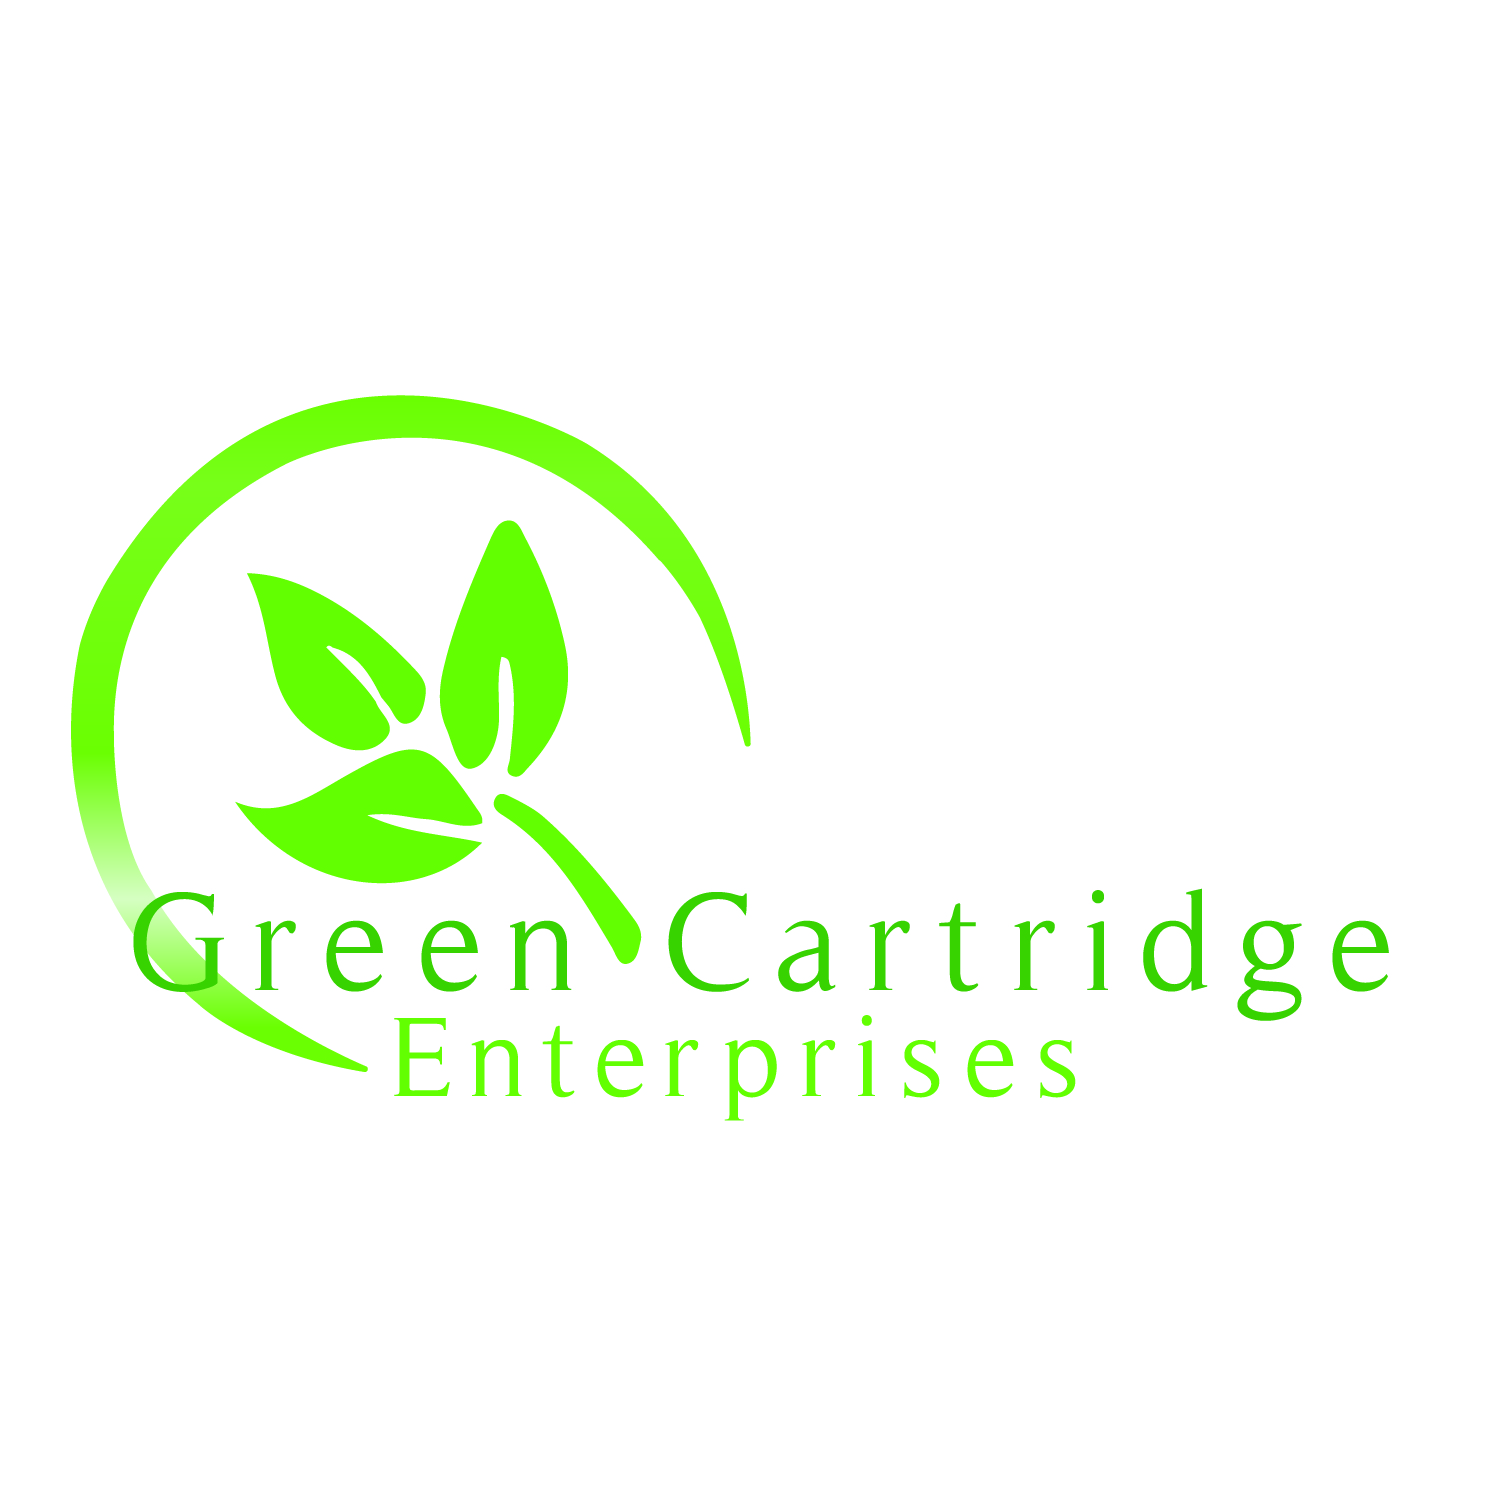 company image for Green Cartridge Enterprises